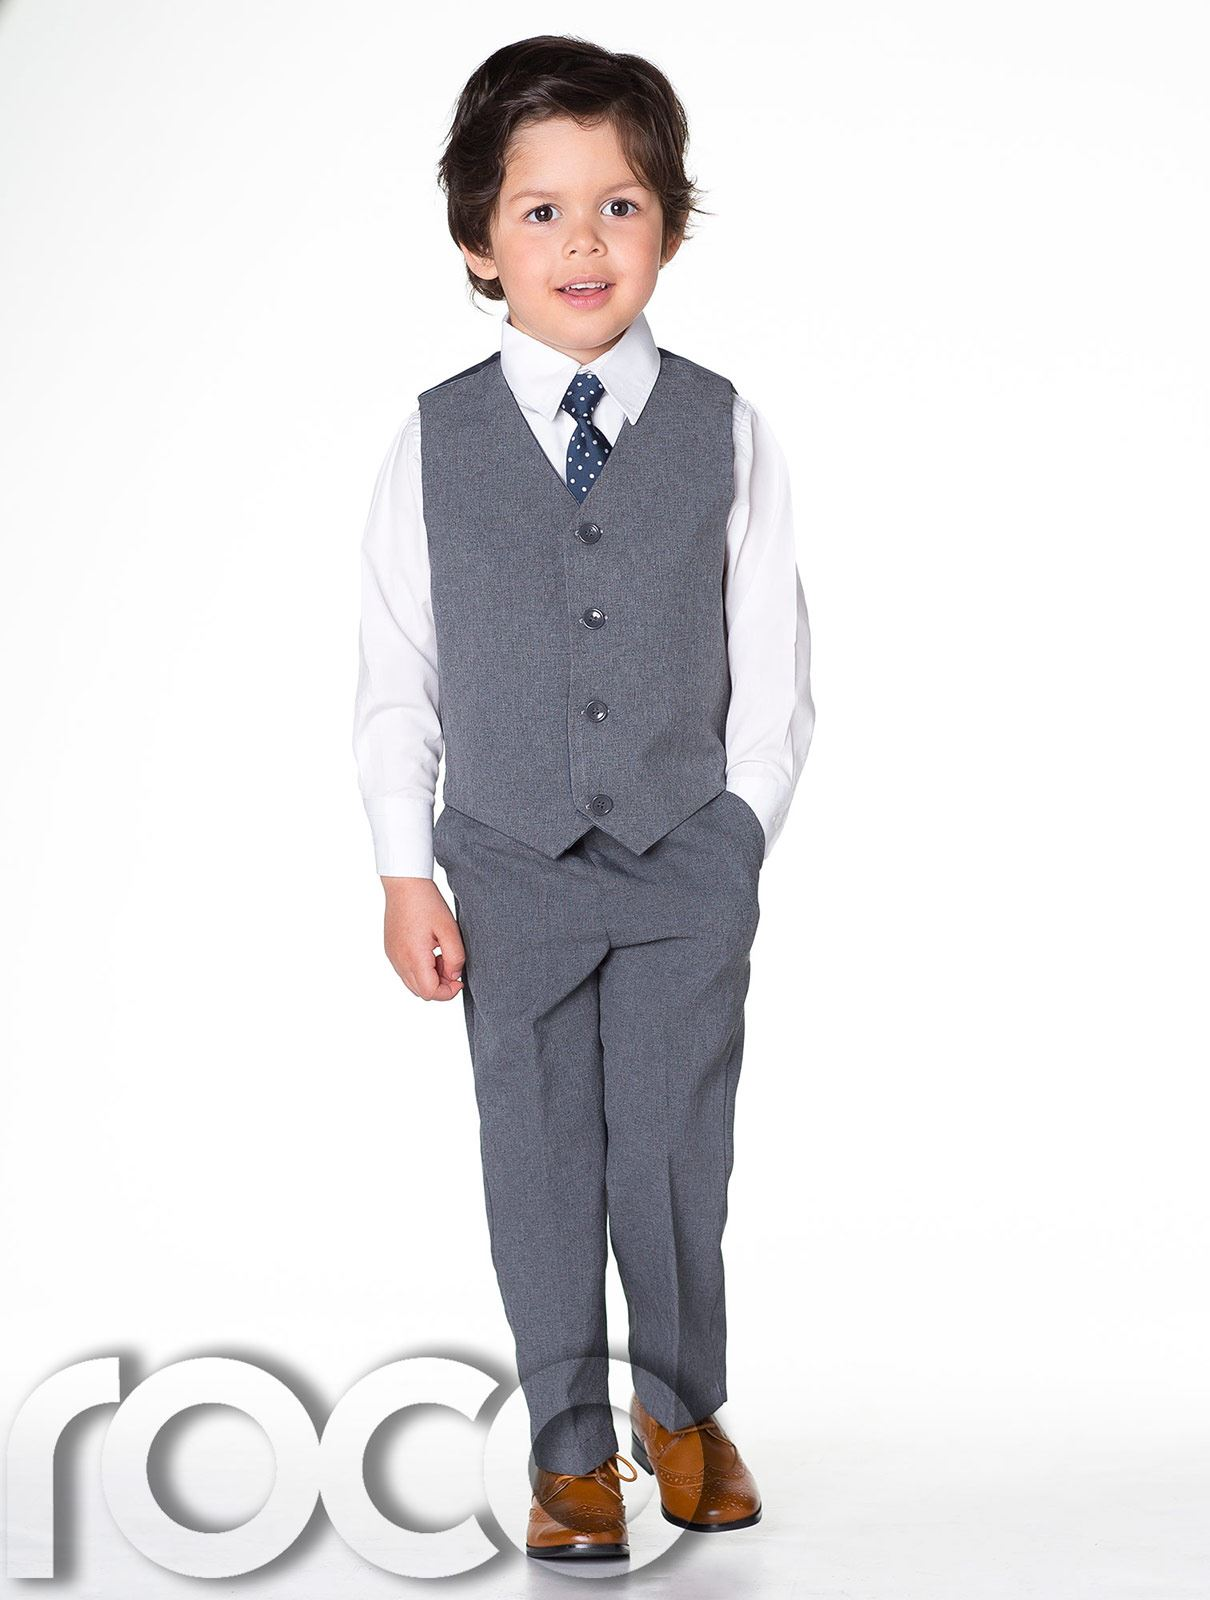 Page-Boy-Suits-Boys-Waistcoat-Suit-Boys-suits-Navy-Suit-Grey-Suit-Blue-Suit thumbnail 3